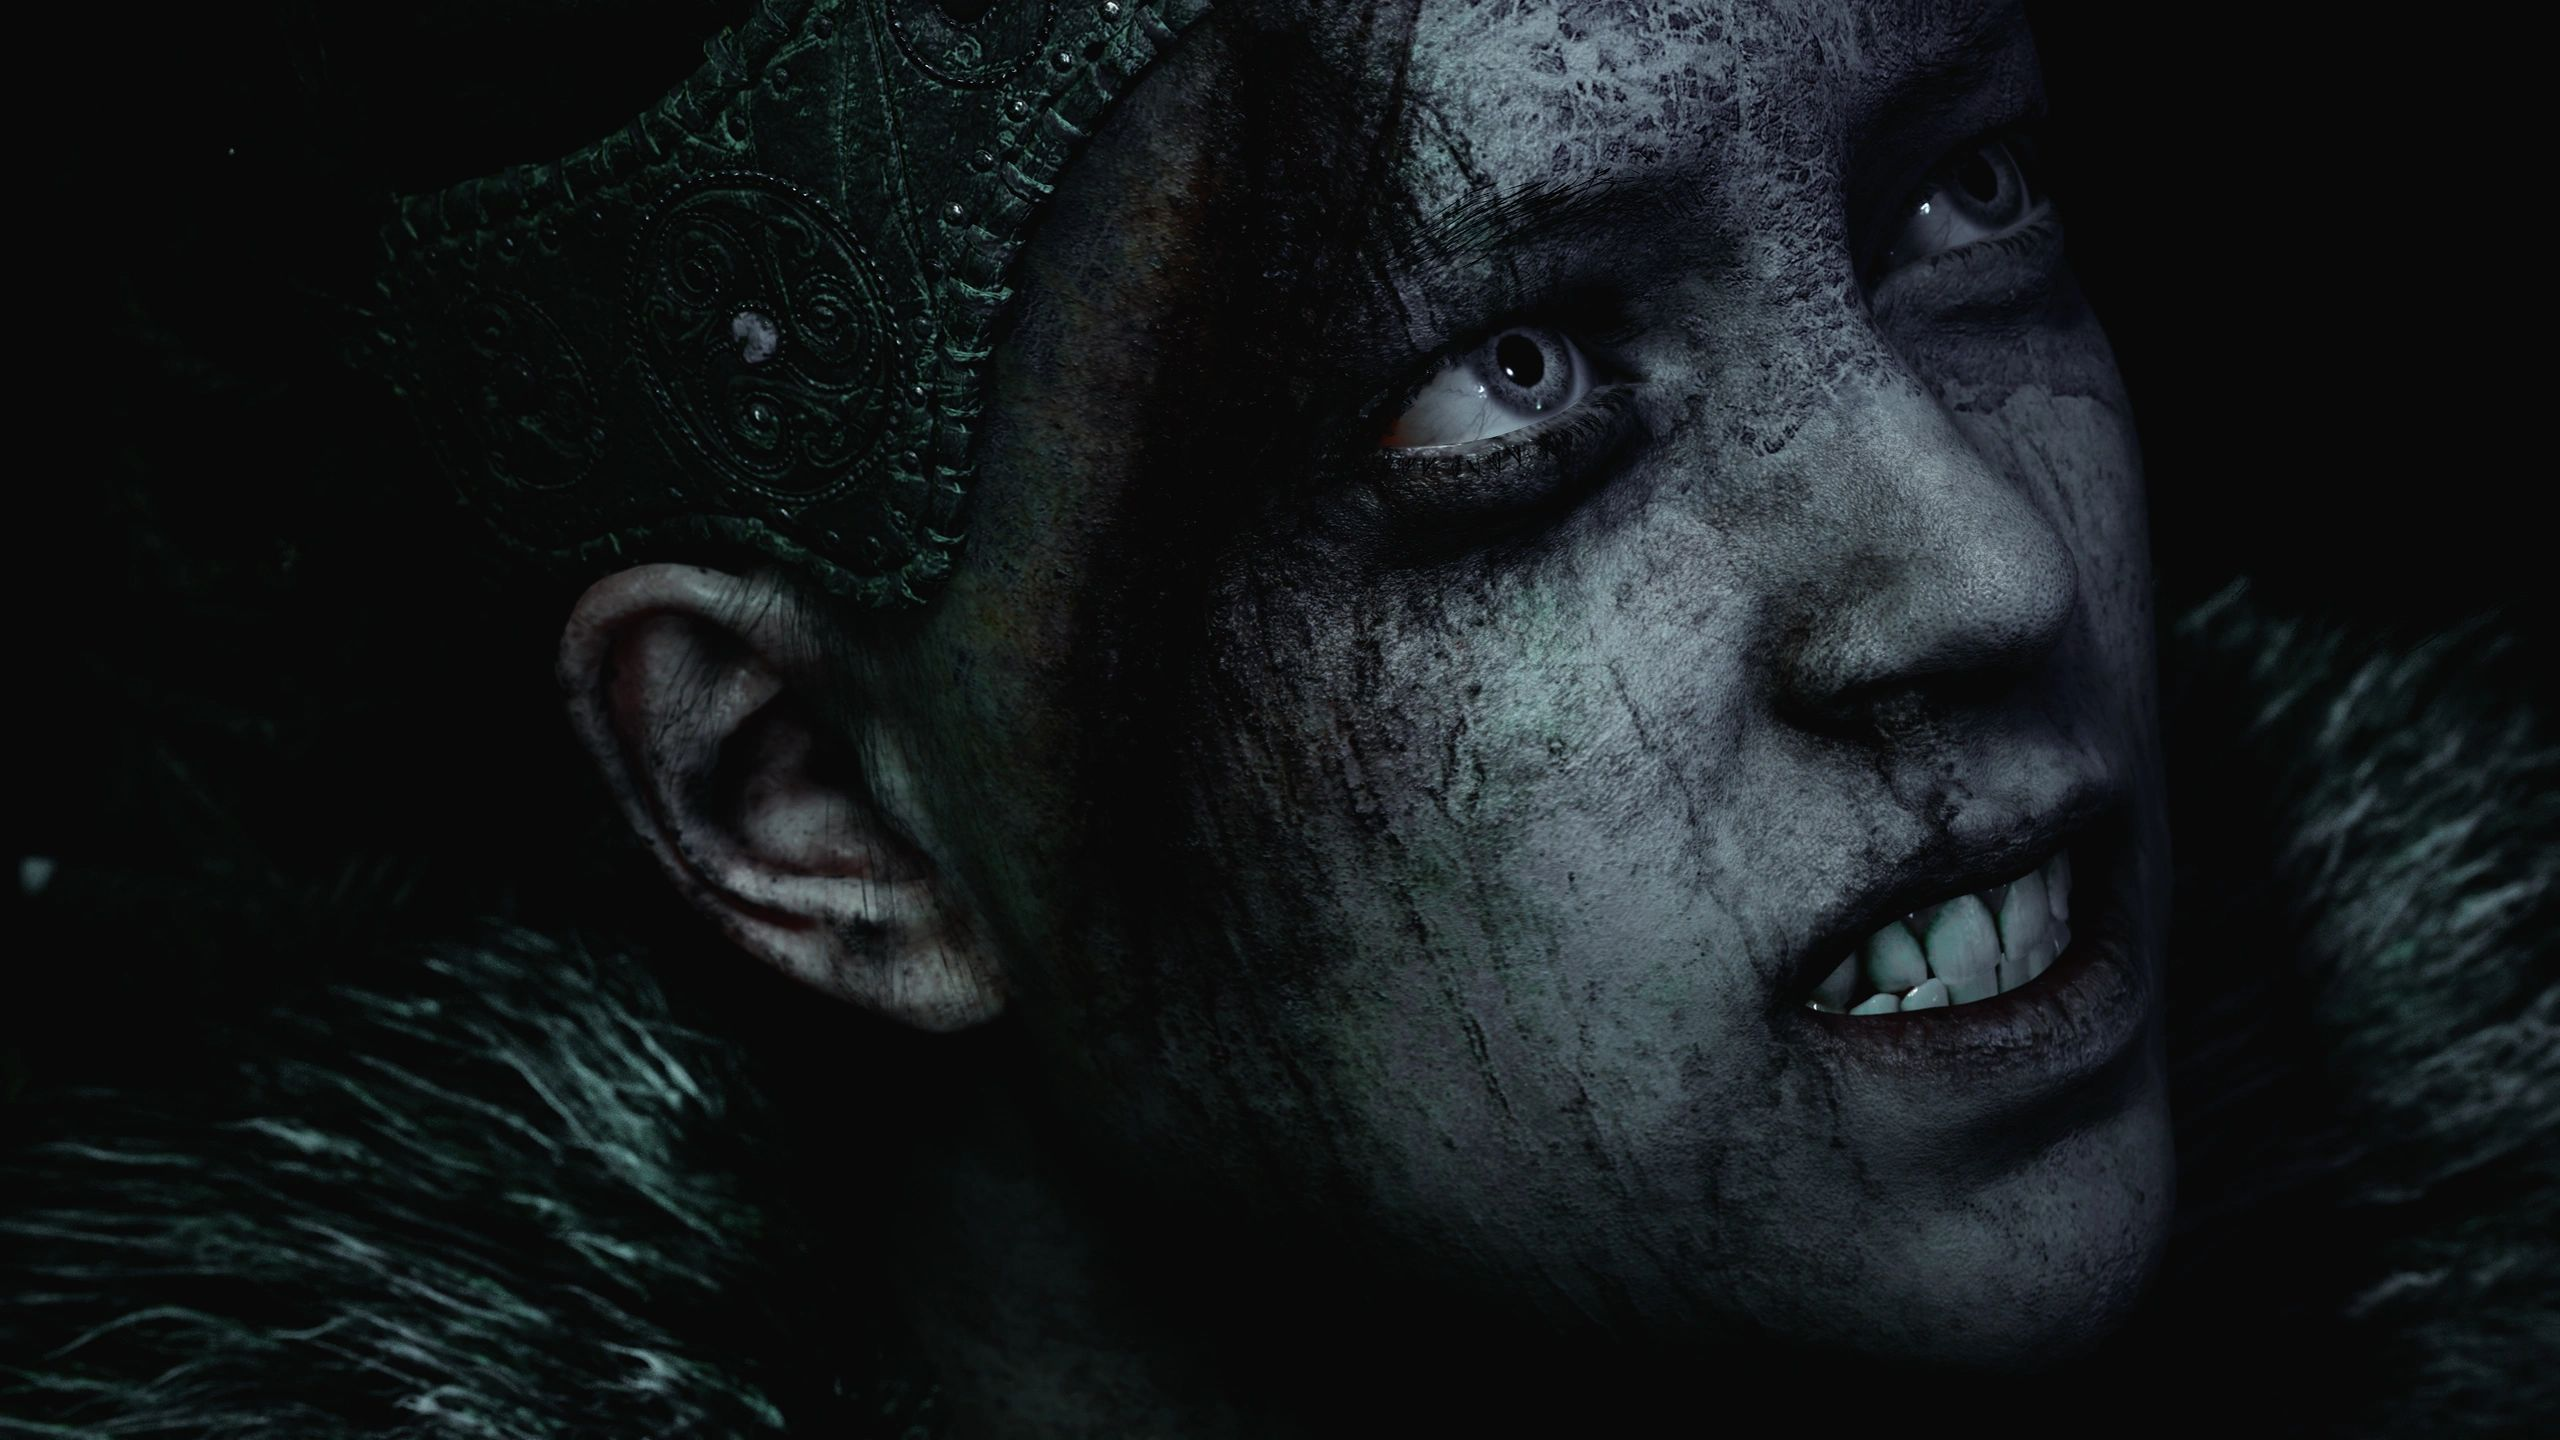 HELLBLADE: SENUA'S SACRIFICE 'VR EDITION' | Full Review, Gameplay